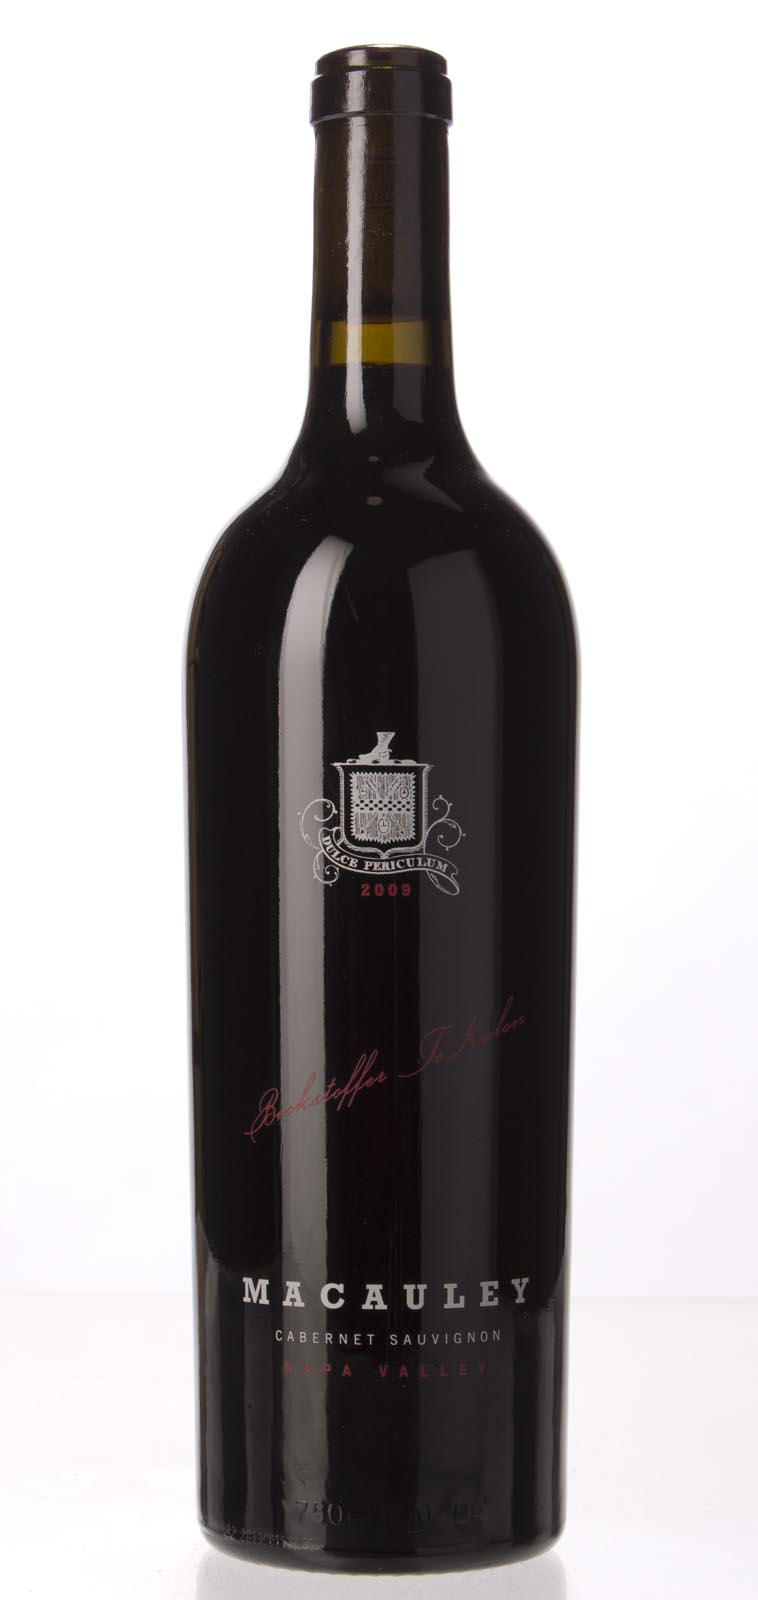 Macauley Cabernet Sauvignon Oakville Beckstoffer To Kalon 2009, 750ml () from The BPW - Merchants of rare and fine wines.